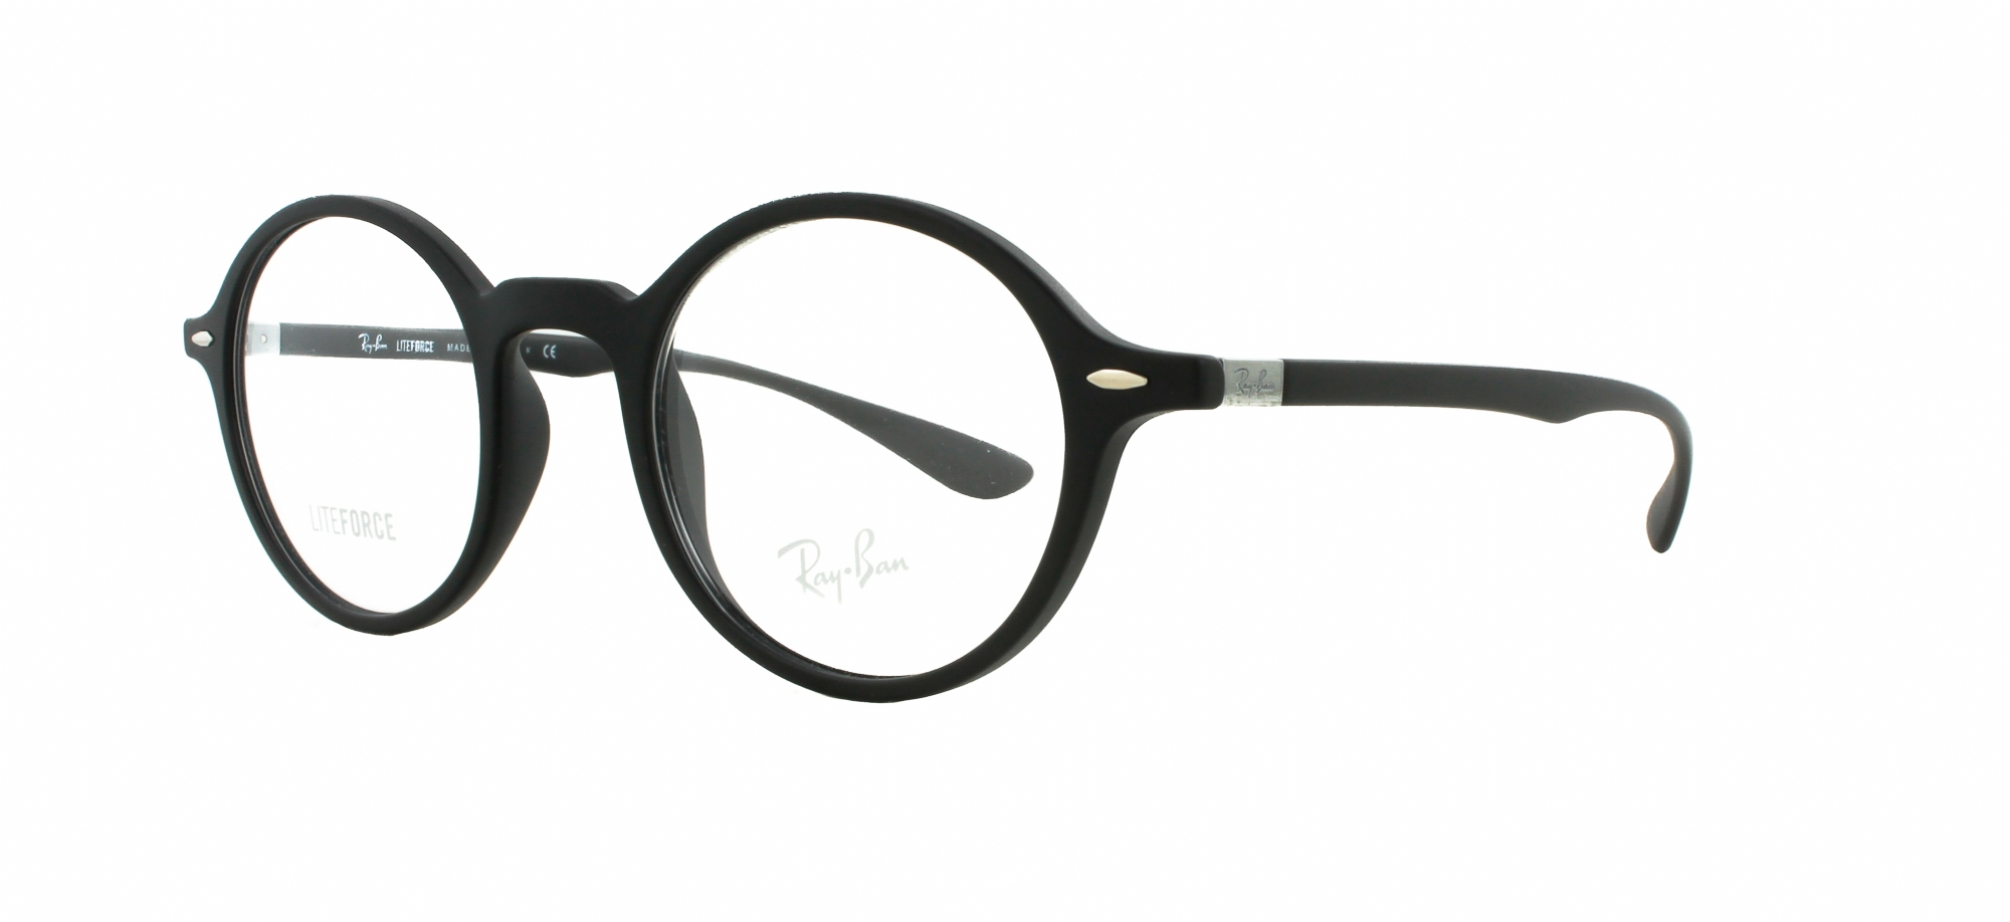 7991e4ddf8 RAY BAN 7069 EYEGLASSES at AtoZEyewear.com